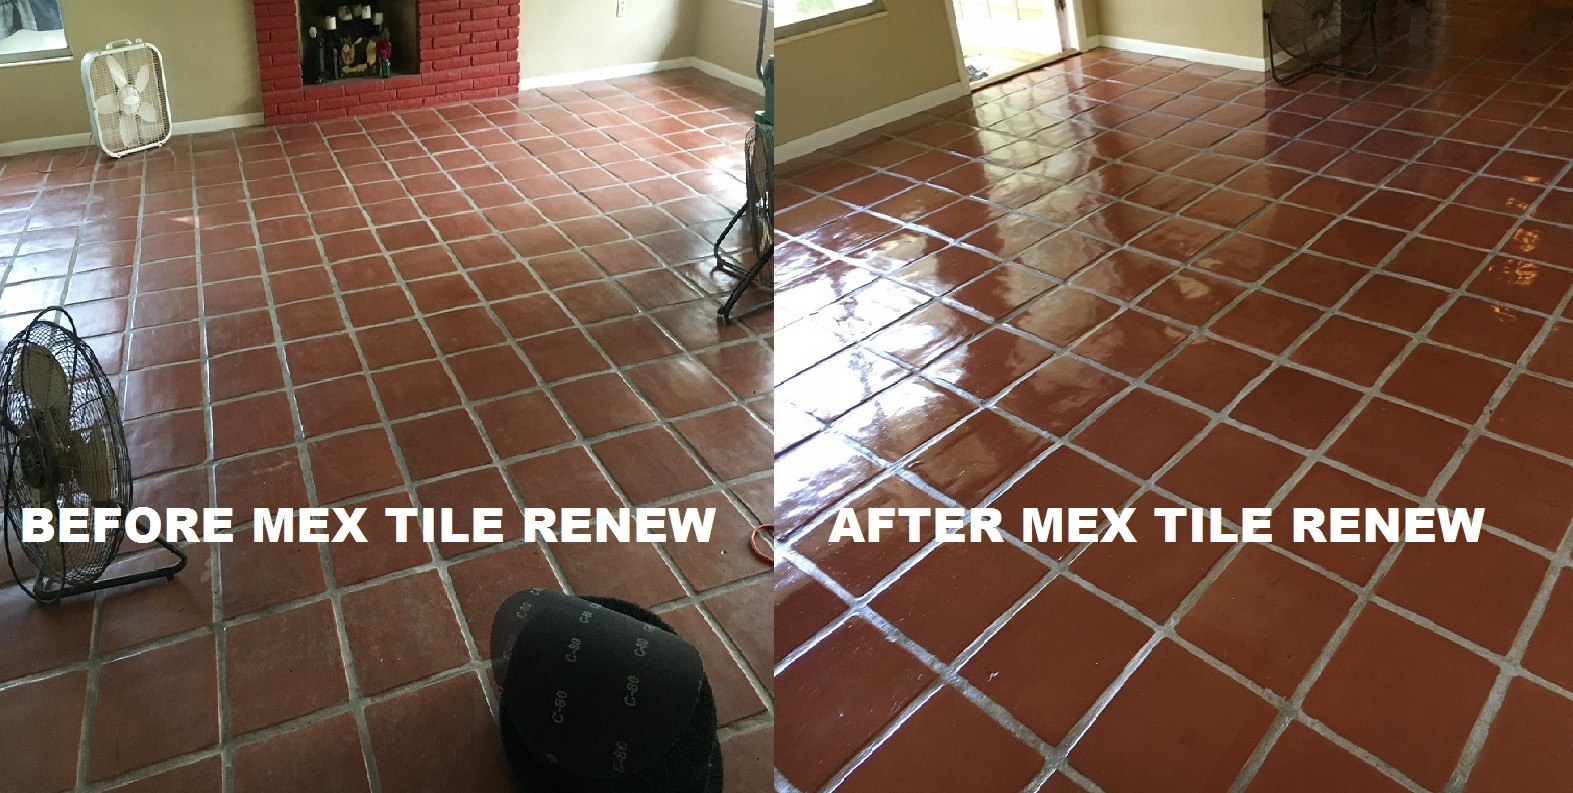 Mexican tile sarasota fl better business bureau approved mexican tile renew project in sarasota fl with light colored grout never clean your mexican tile floor with vinegar it will ruin the finish and darken the dailygadgetfo Image collections